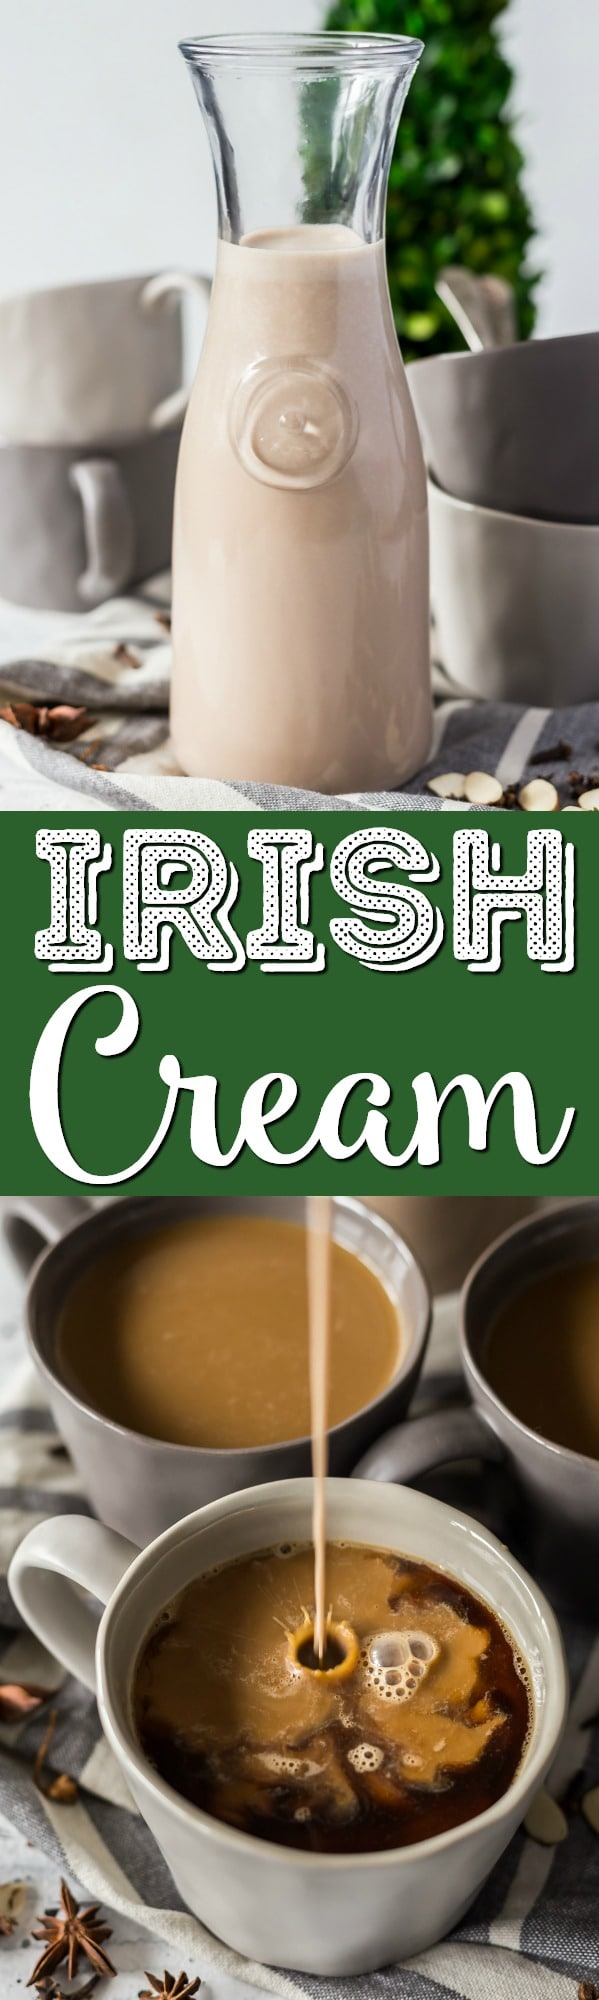 This Homemade Irish Cream Recipe is way better than the store-bought version, delicious notes of coffee, coconut, almond, chocolate, and loaded with Irish Whiskey and cream. via @sugarandsoulco